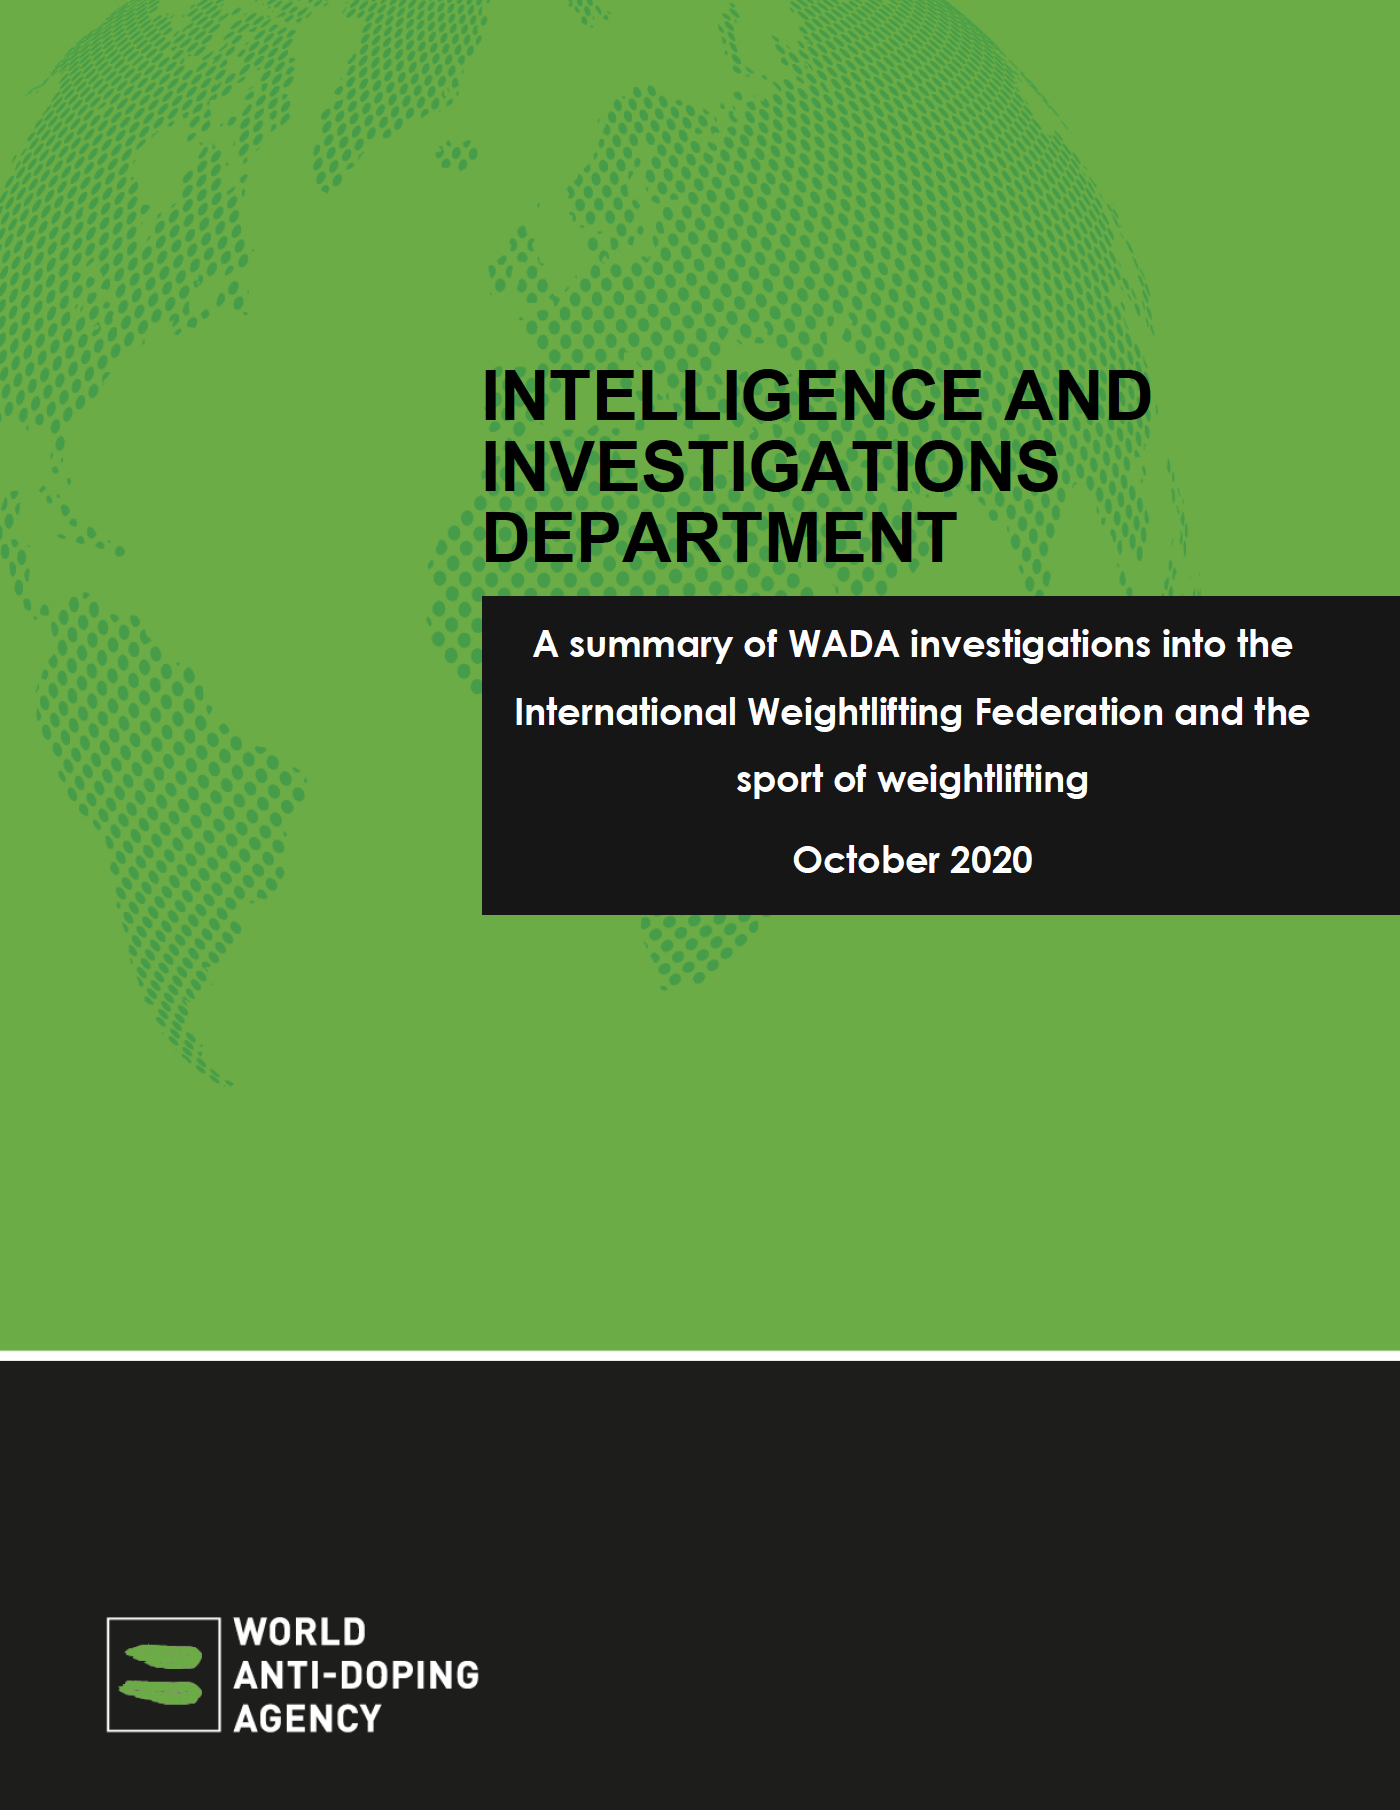 A summary of WADA investigations into the International Weightlifting Federation and the sport of weightlifting